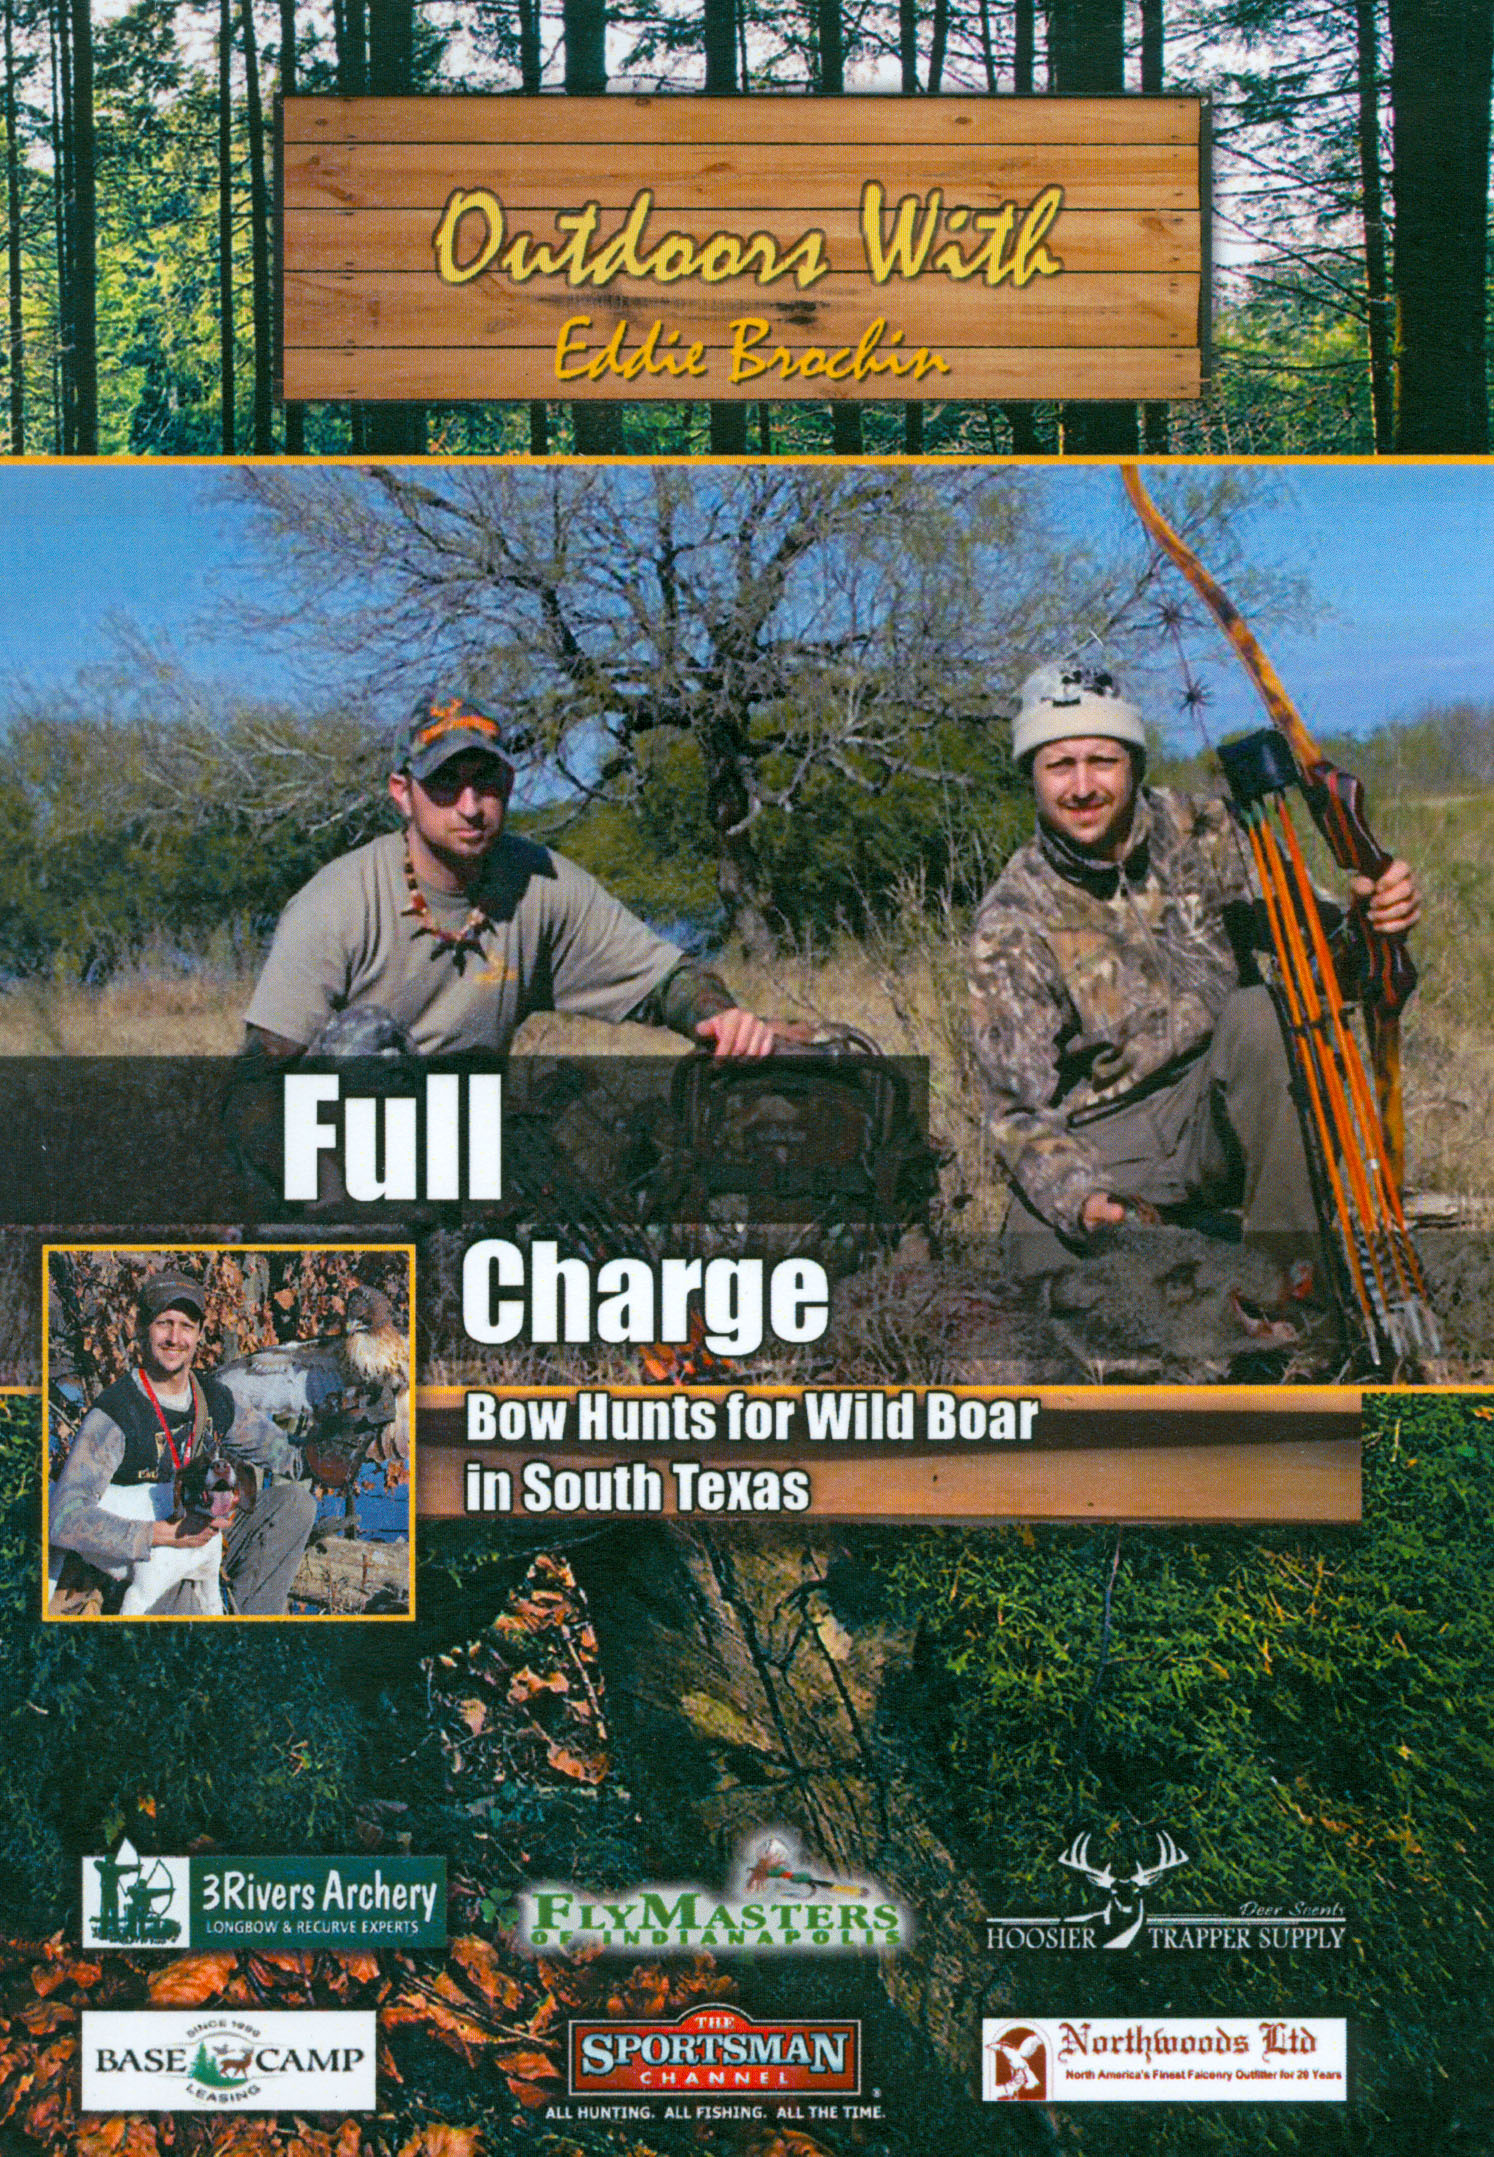 Outdoors With Eddie Brochin: Full Charge